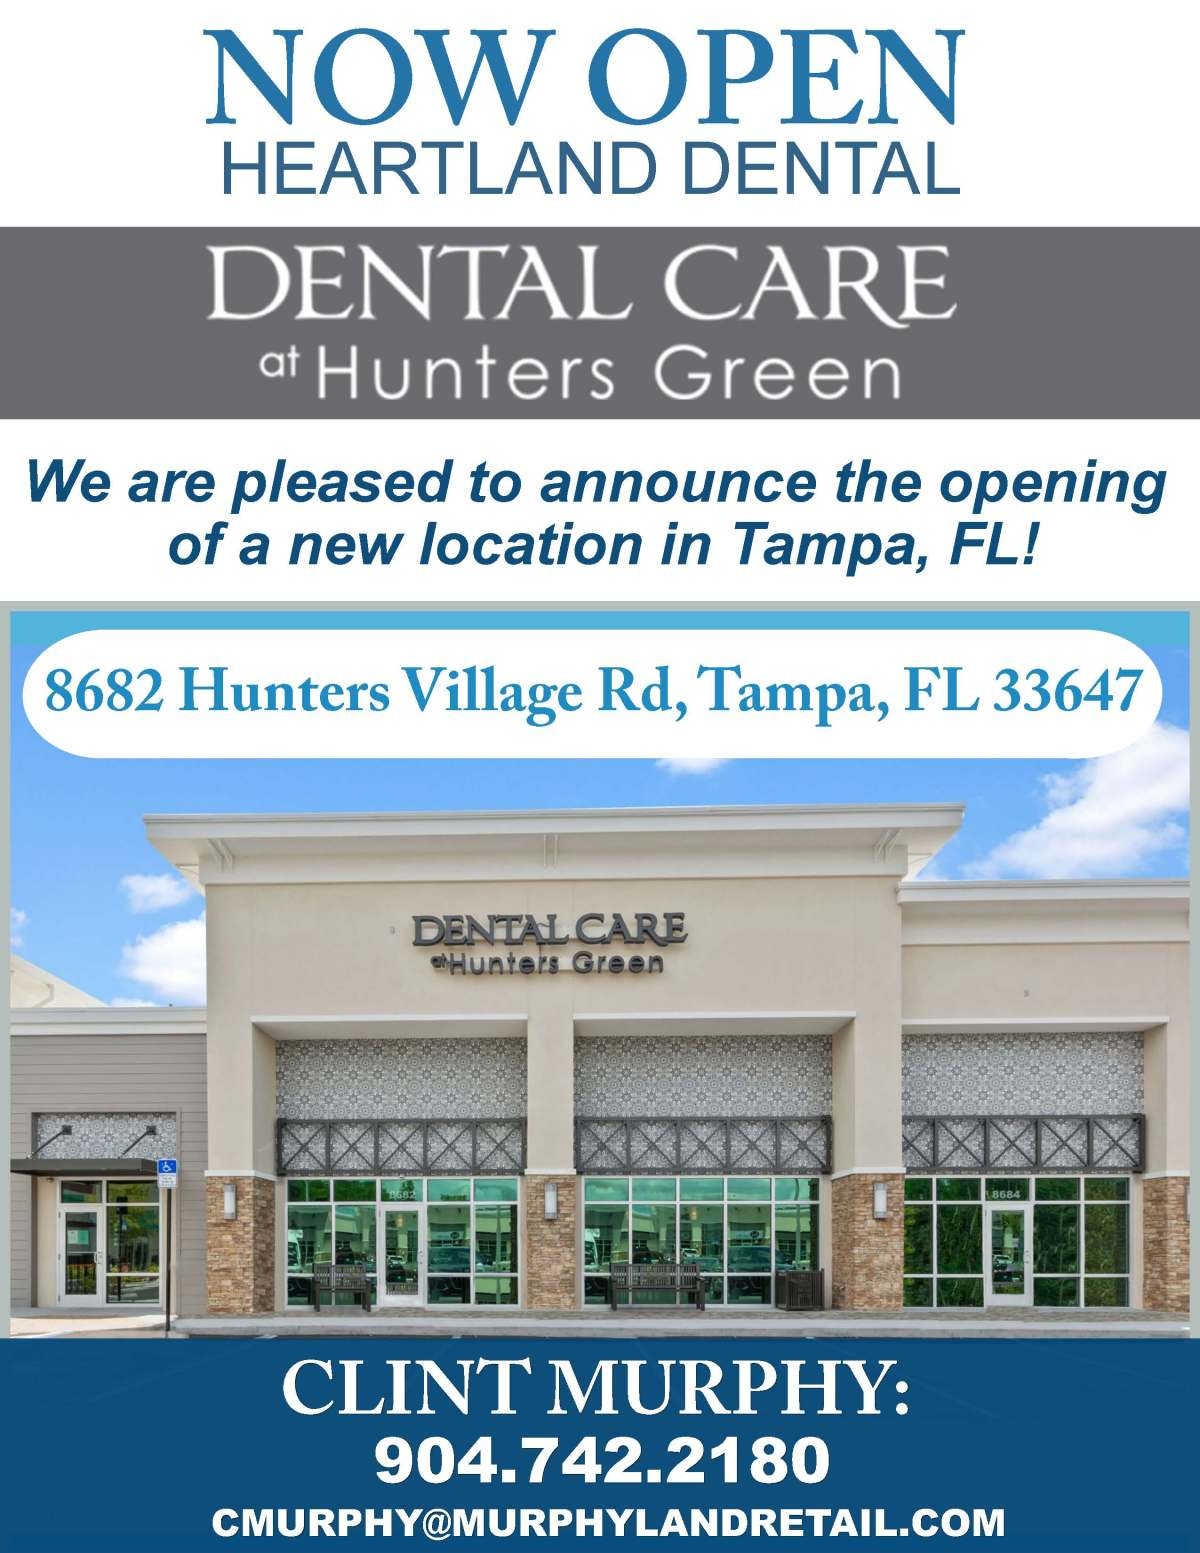 Hunters Green Dental Care